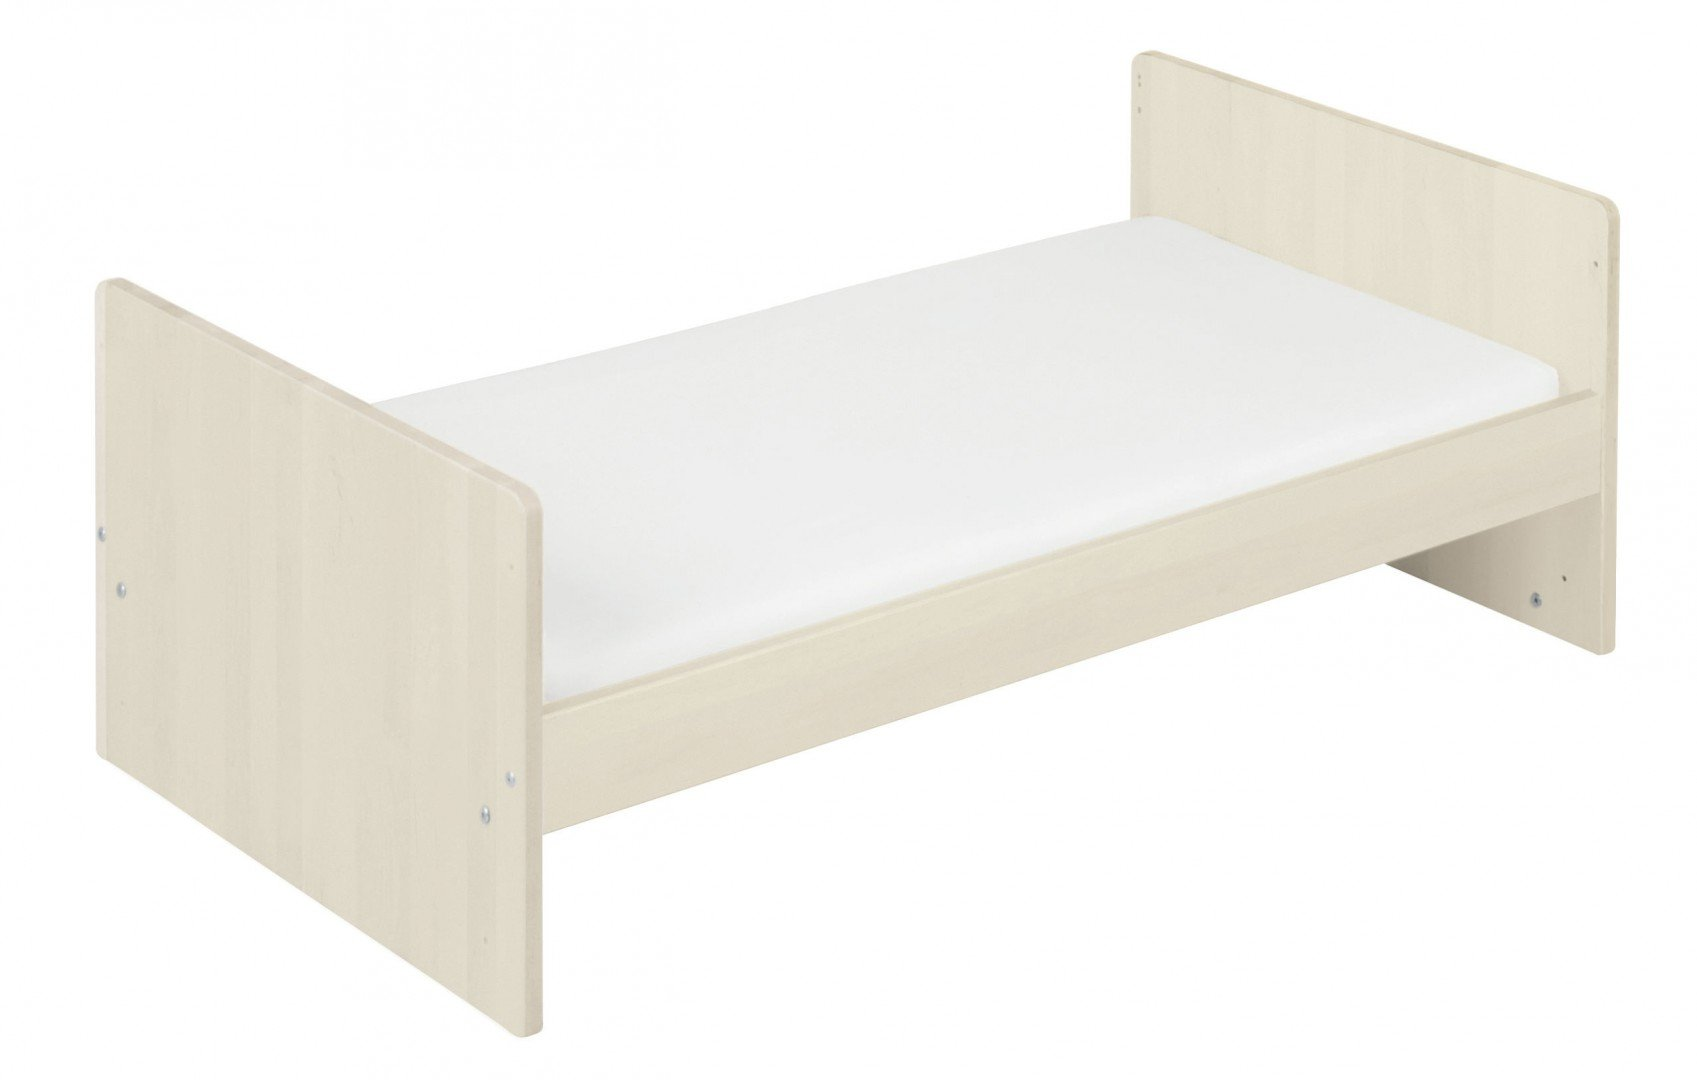 BioKinder 22600 Lina babybed cot 70x140 cm. Biological massive wood Bio-Kinder Babybed cot Lina Sustainable solid wood. Biological finish. Individually handcrafted by professional carpenters Surface W 70 cm, L 140 cm. Outward measurement L 150 cm, W 77 cm, H 90 cm. 2